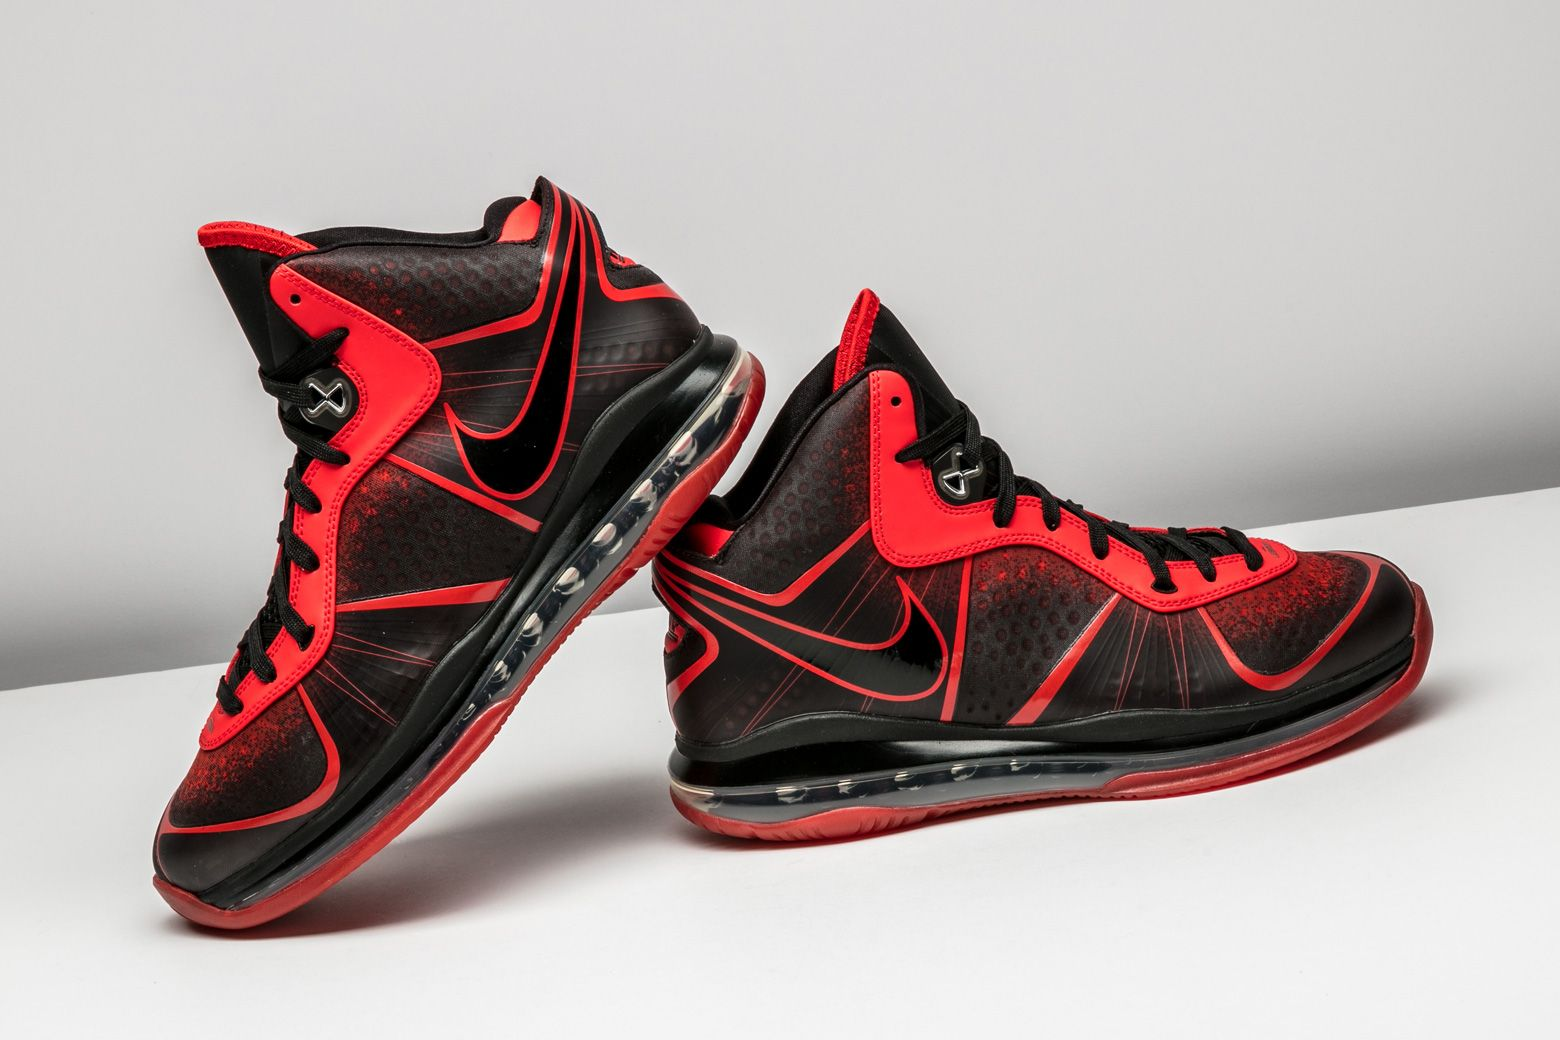 893703fe6b4f This unreleased Nike LeBron 8 V 2 colorway is a rare sample created early  for a NBA MVP season that never happened.